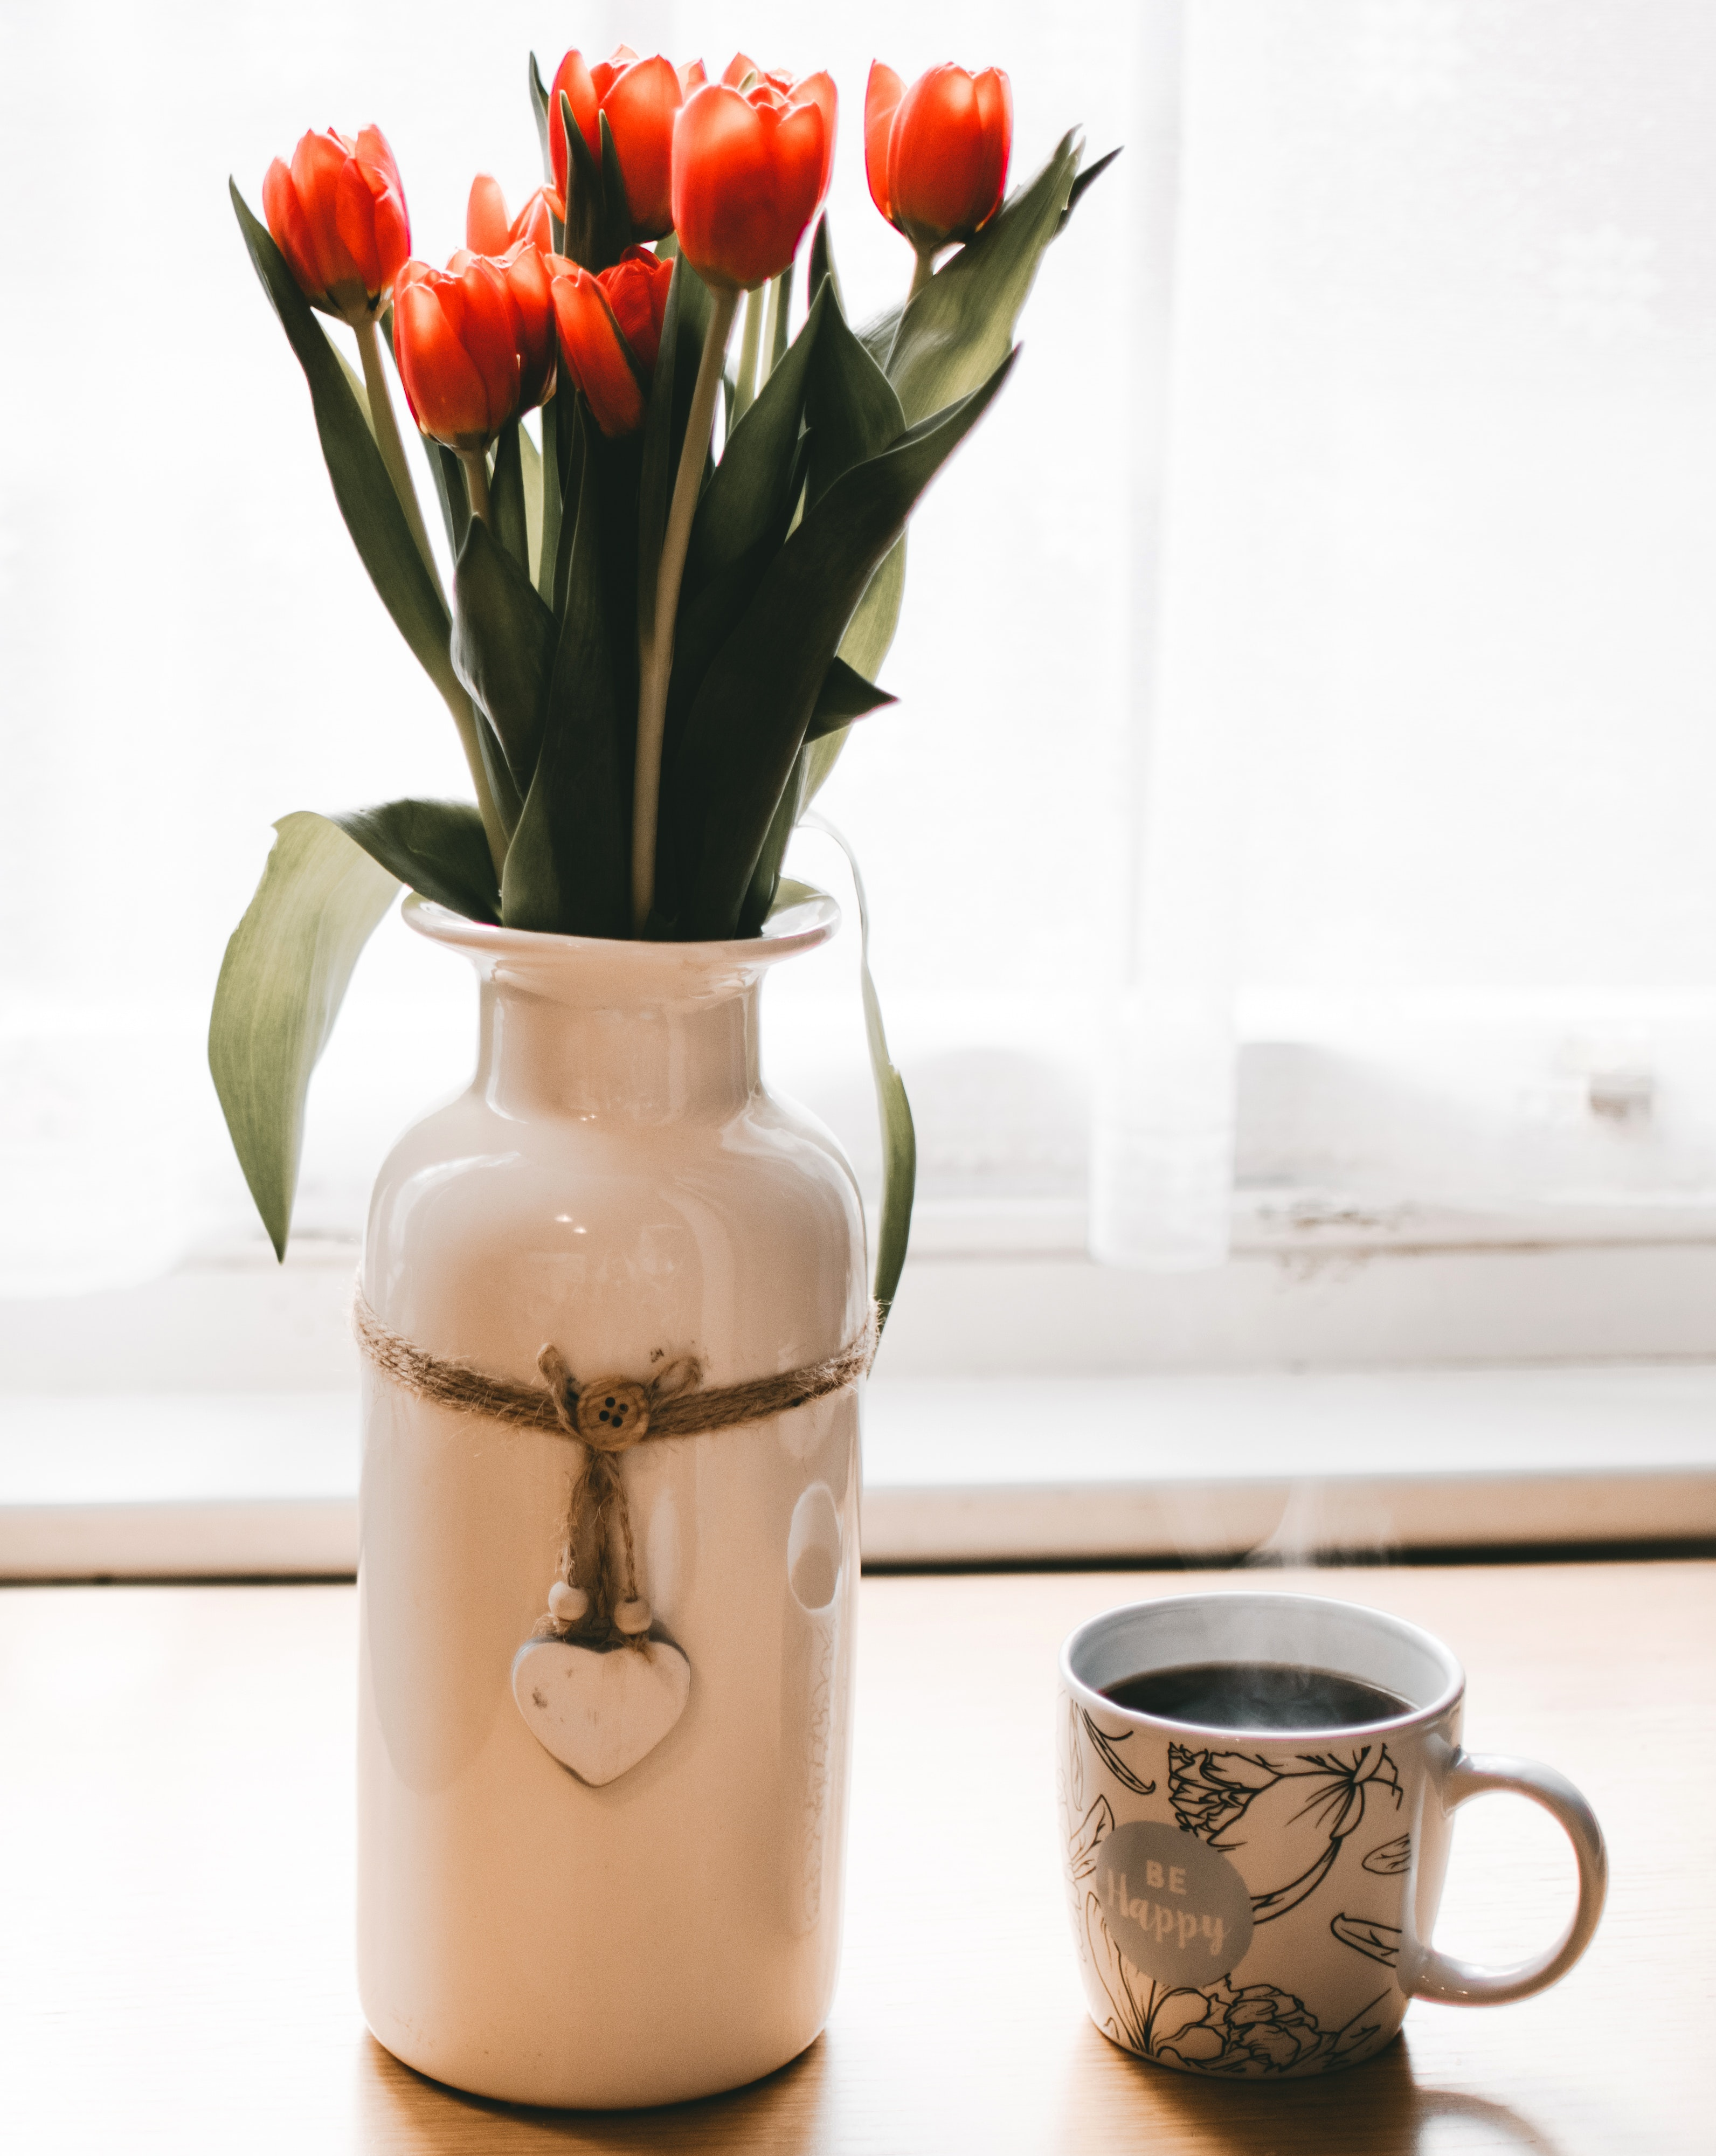 Red Tulips Flowers in White Ceramic Vase Beside Cup of Coffee, Flower vase, Tulips, Table, Porcelain, HQ Photo